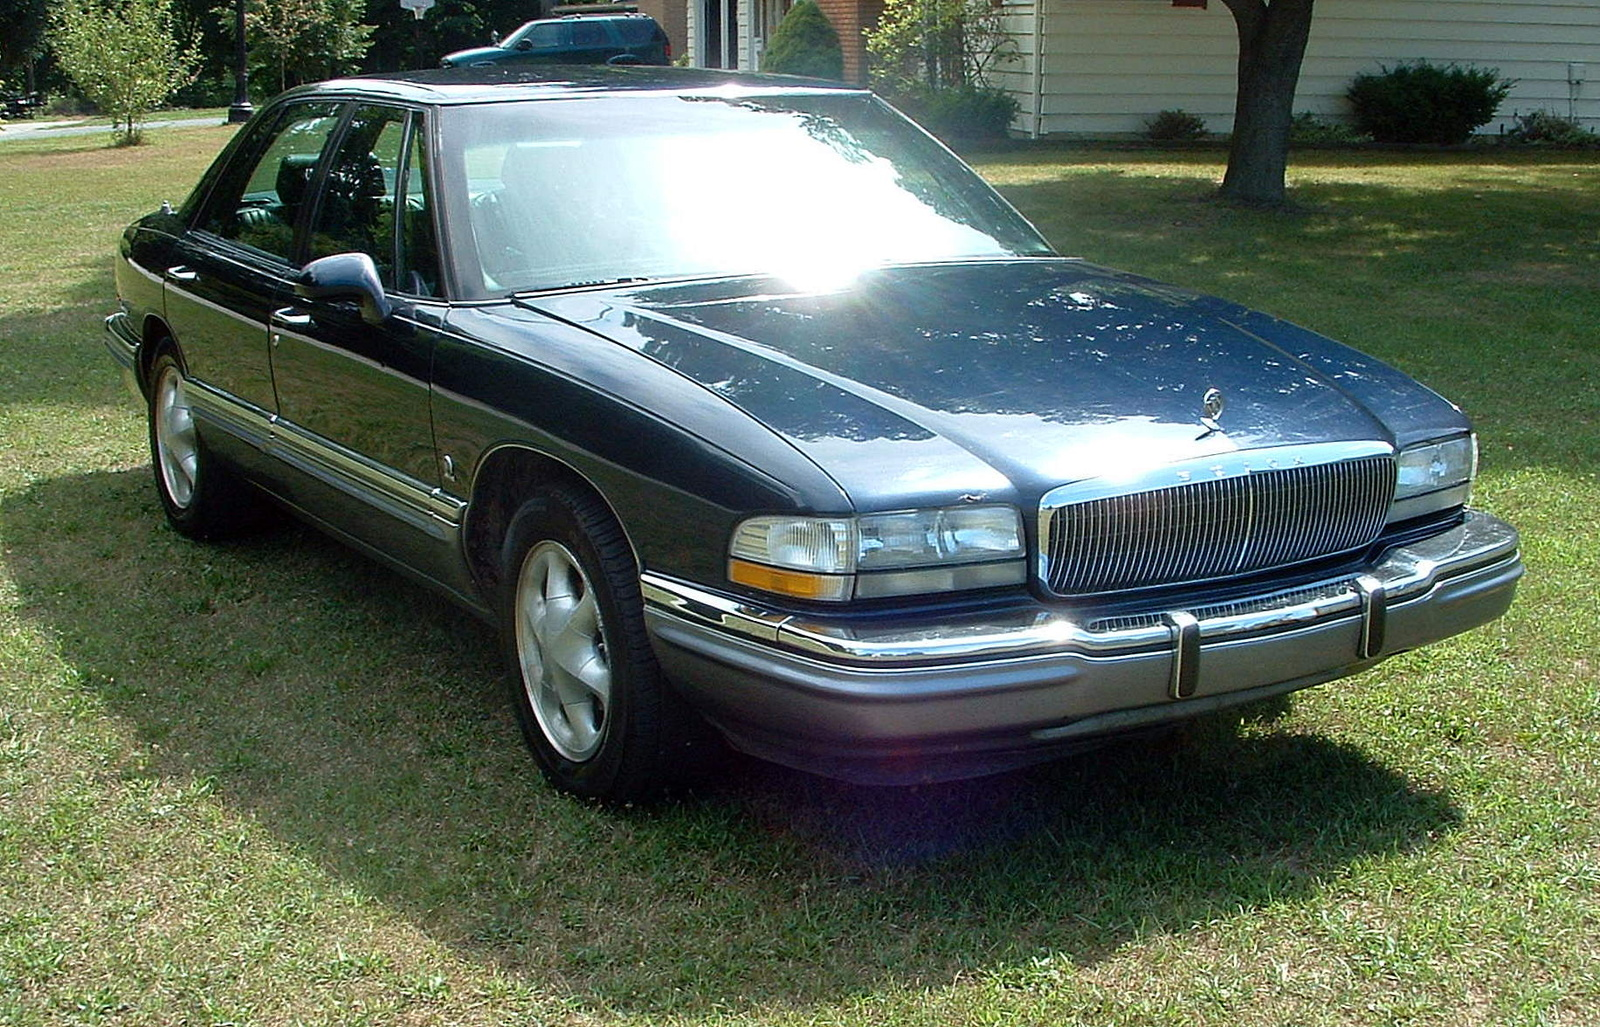 1992 buick lesabre information and photos zombiedrive. Black Bedroom Furniture Sets. Home Design Ideas